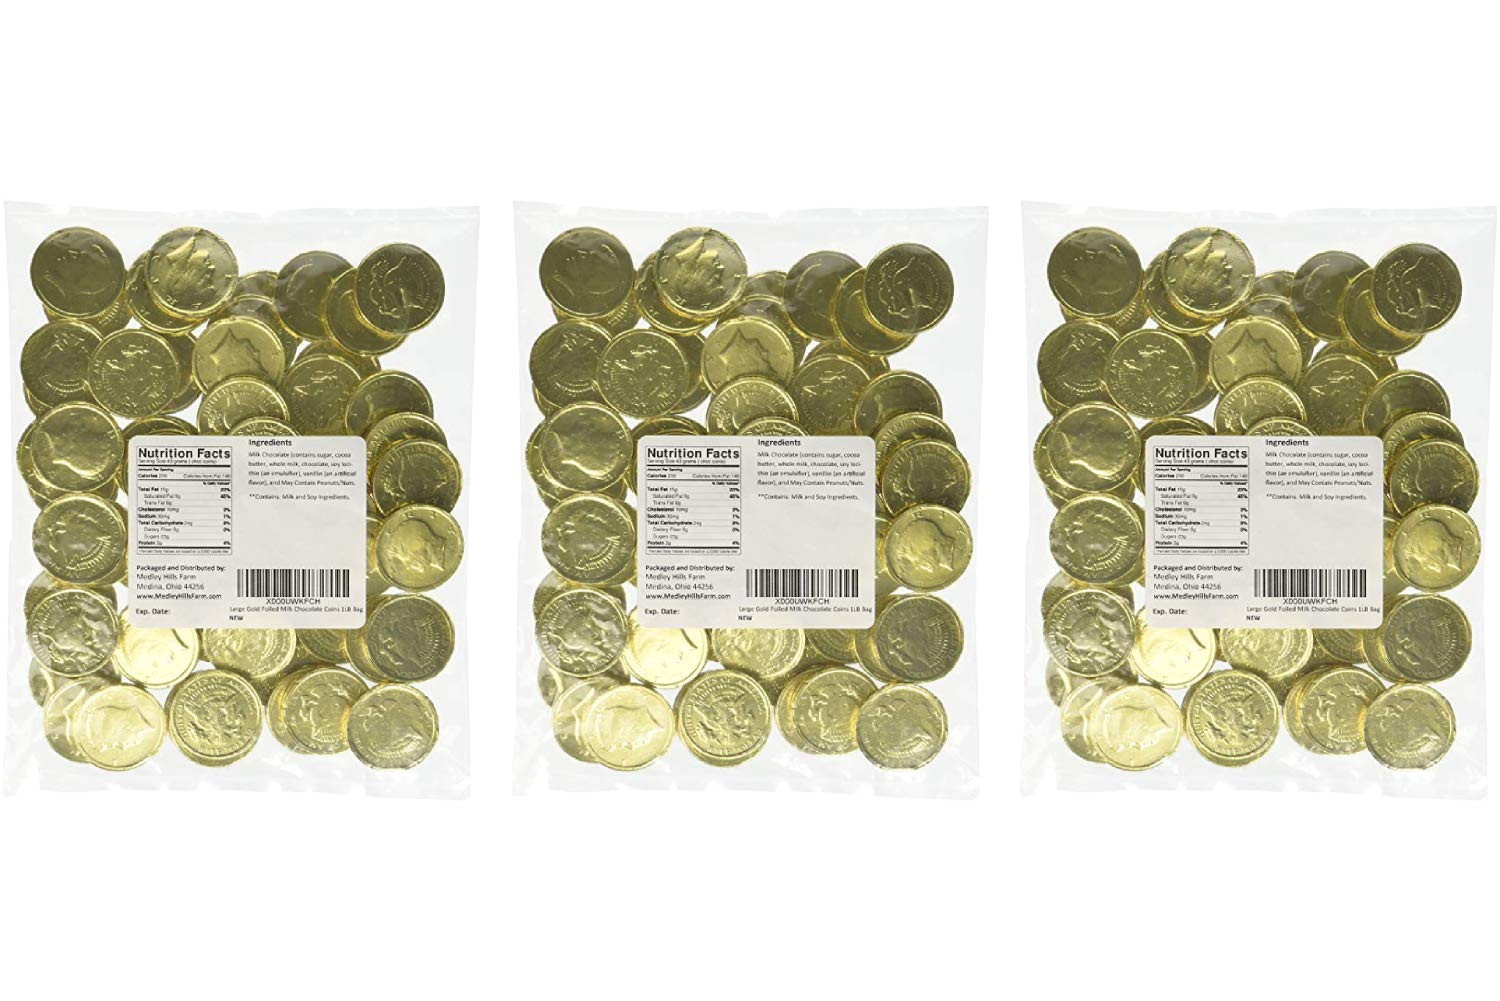 amazon com large gold foiled milk chocolate coins 1lb bag chocolate assortments and samplers grocery gourmet food